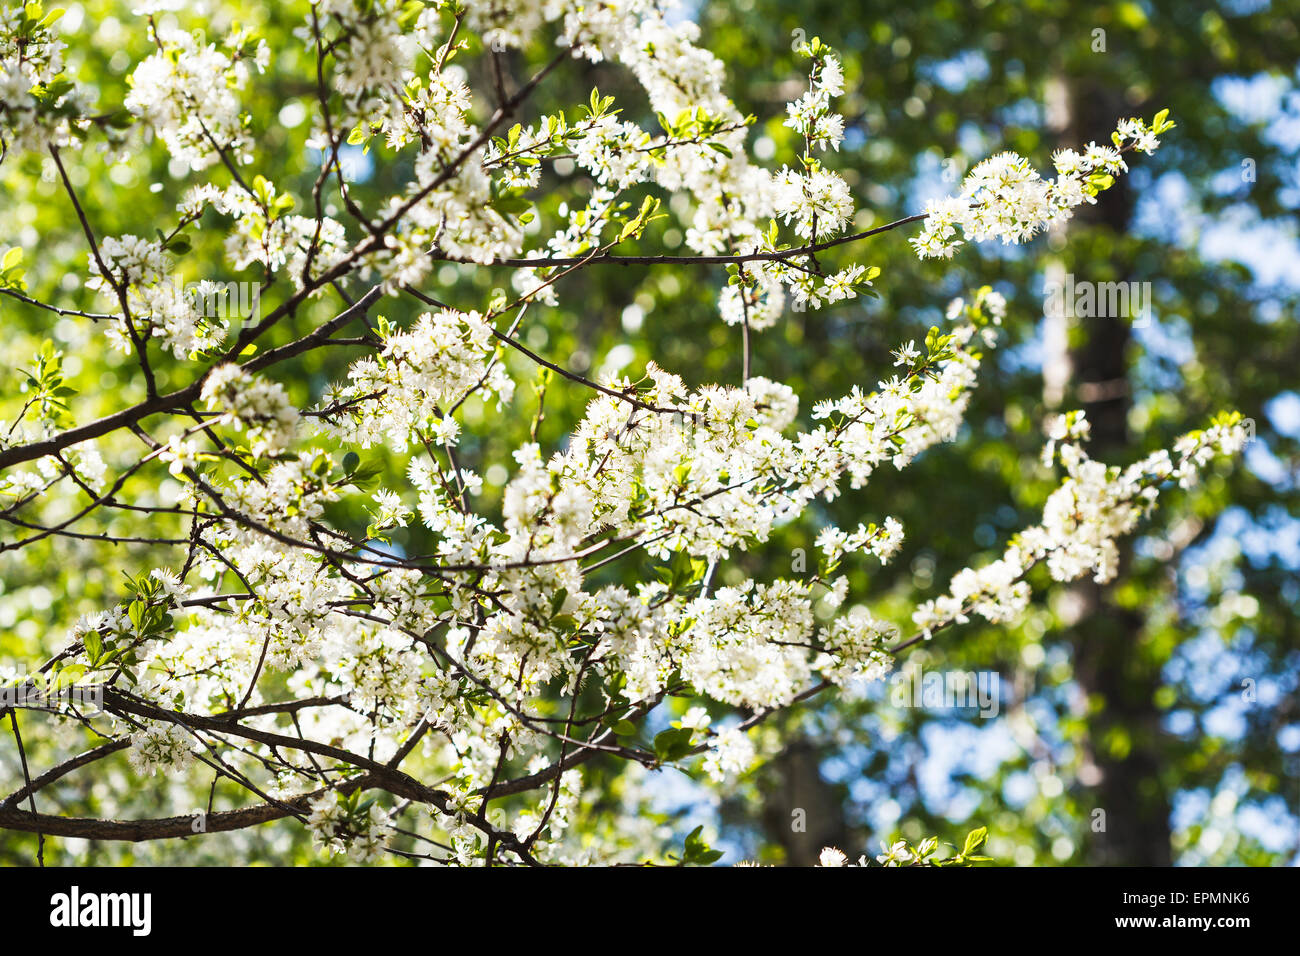 Twig With Blossoms Of Cherry Plum Stock Photos & Twig With Blossoms ...